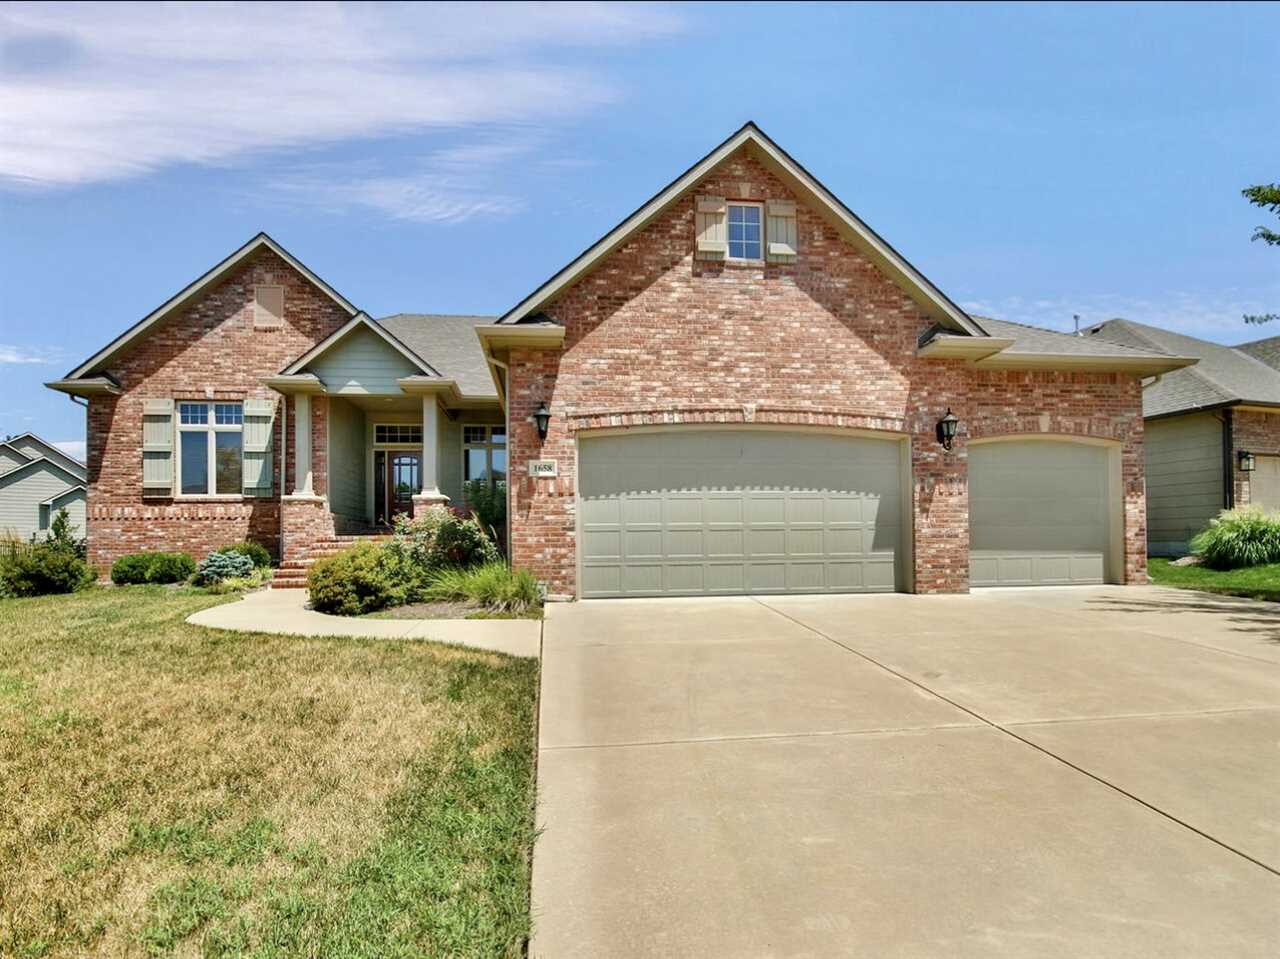 I welcome you to this Beautiful Andover home in sought after Montanna hills.  Andover Central School